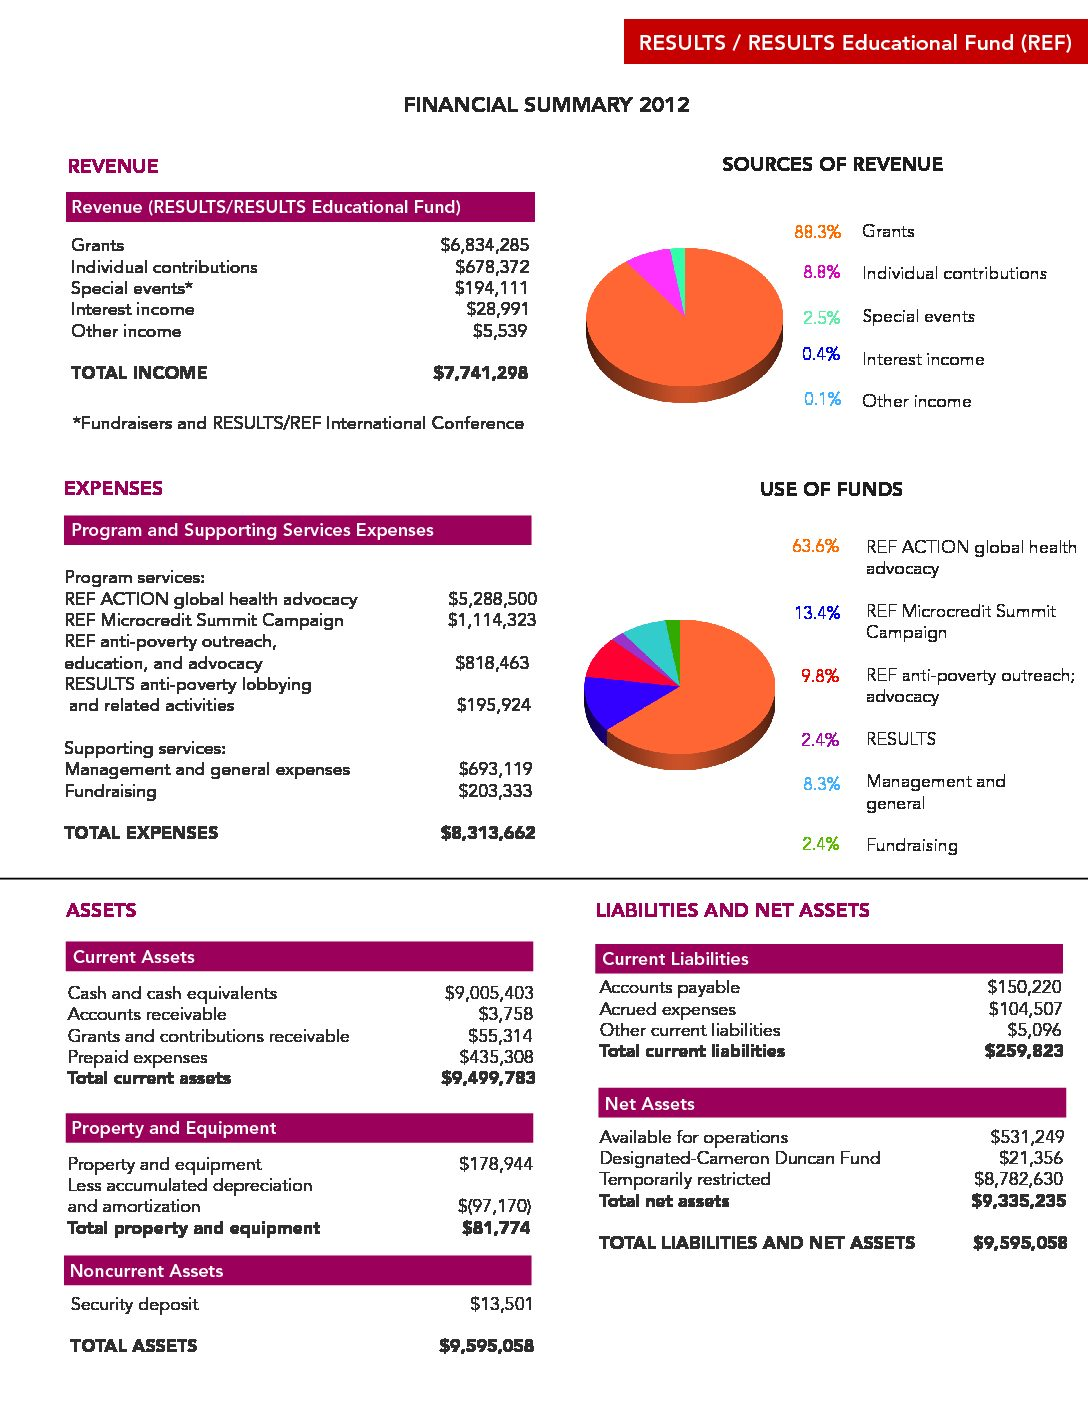 Annual report financial summary